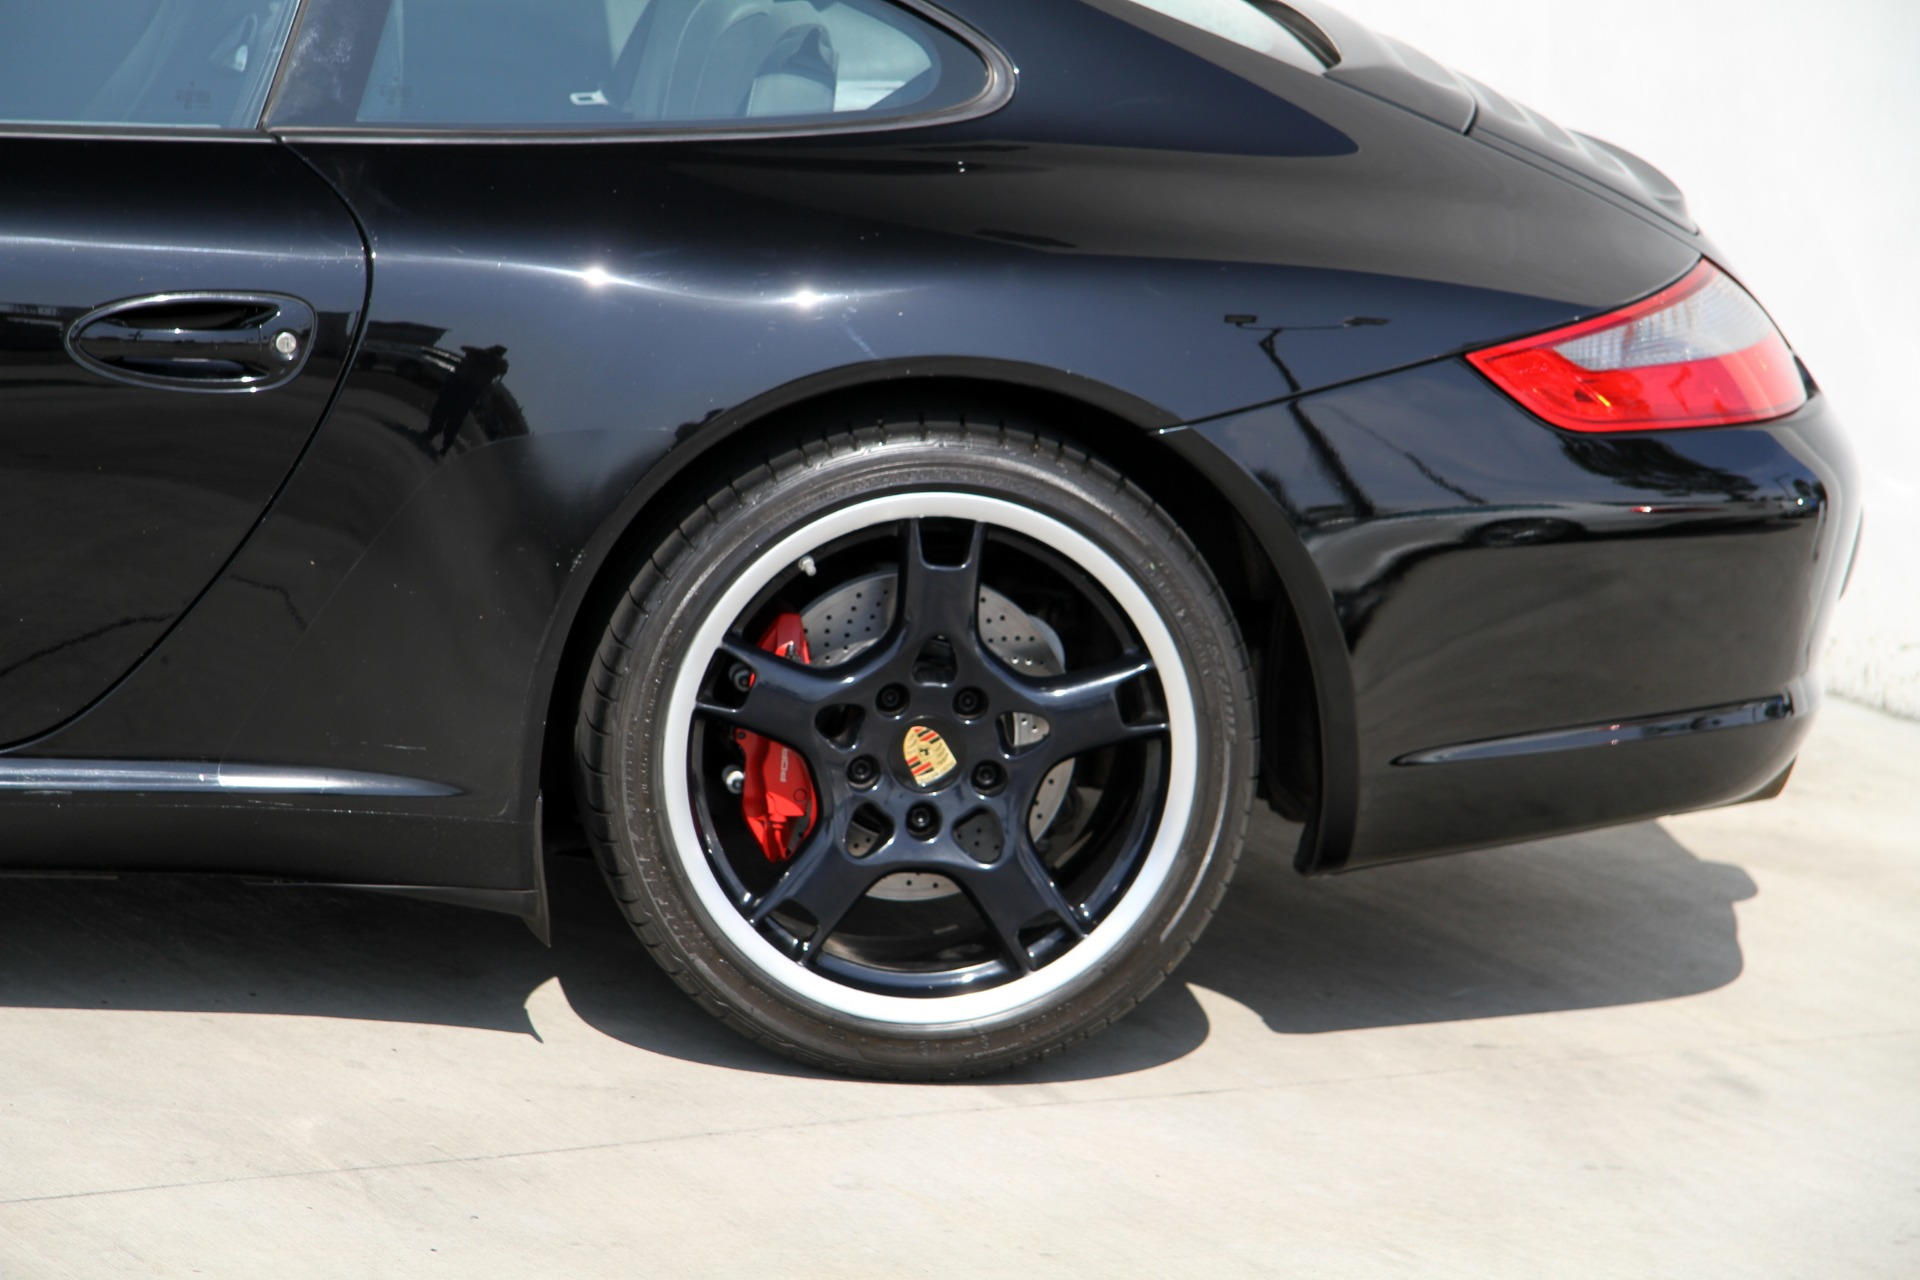 Used 2006 Porsche 911 For Sale Near Me Manual Guide